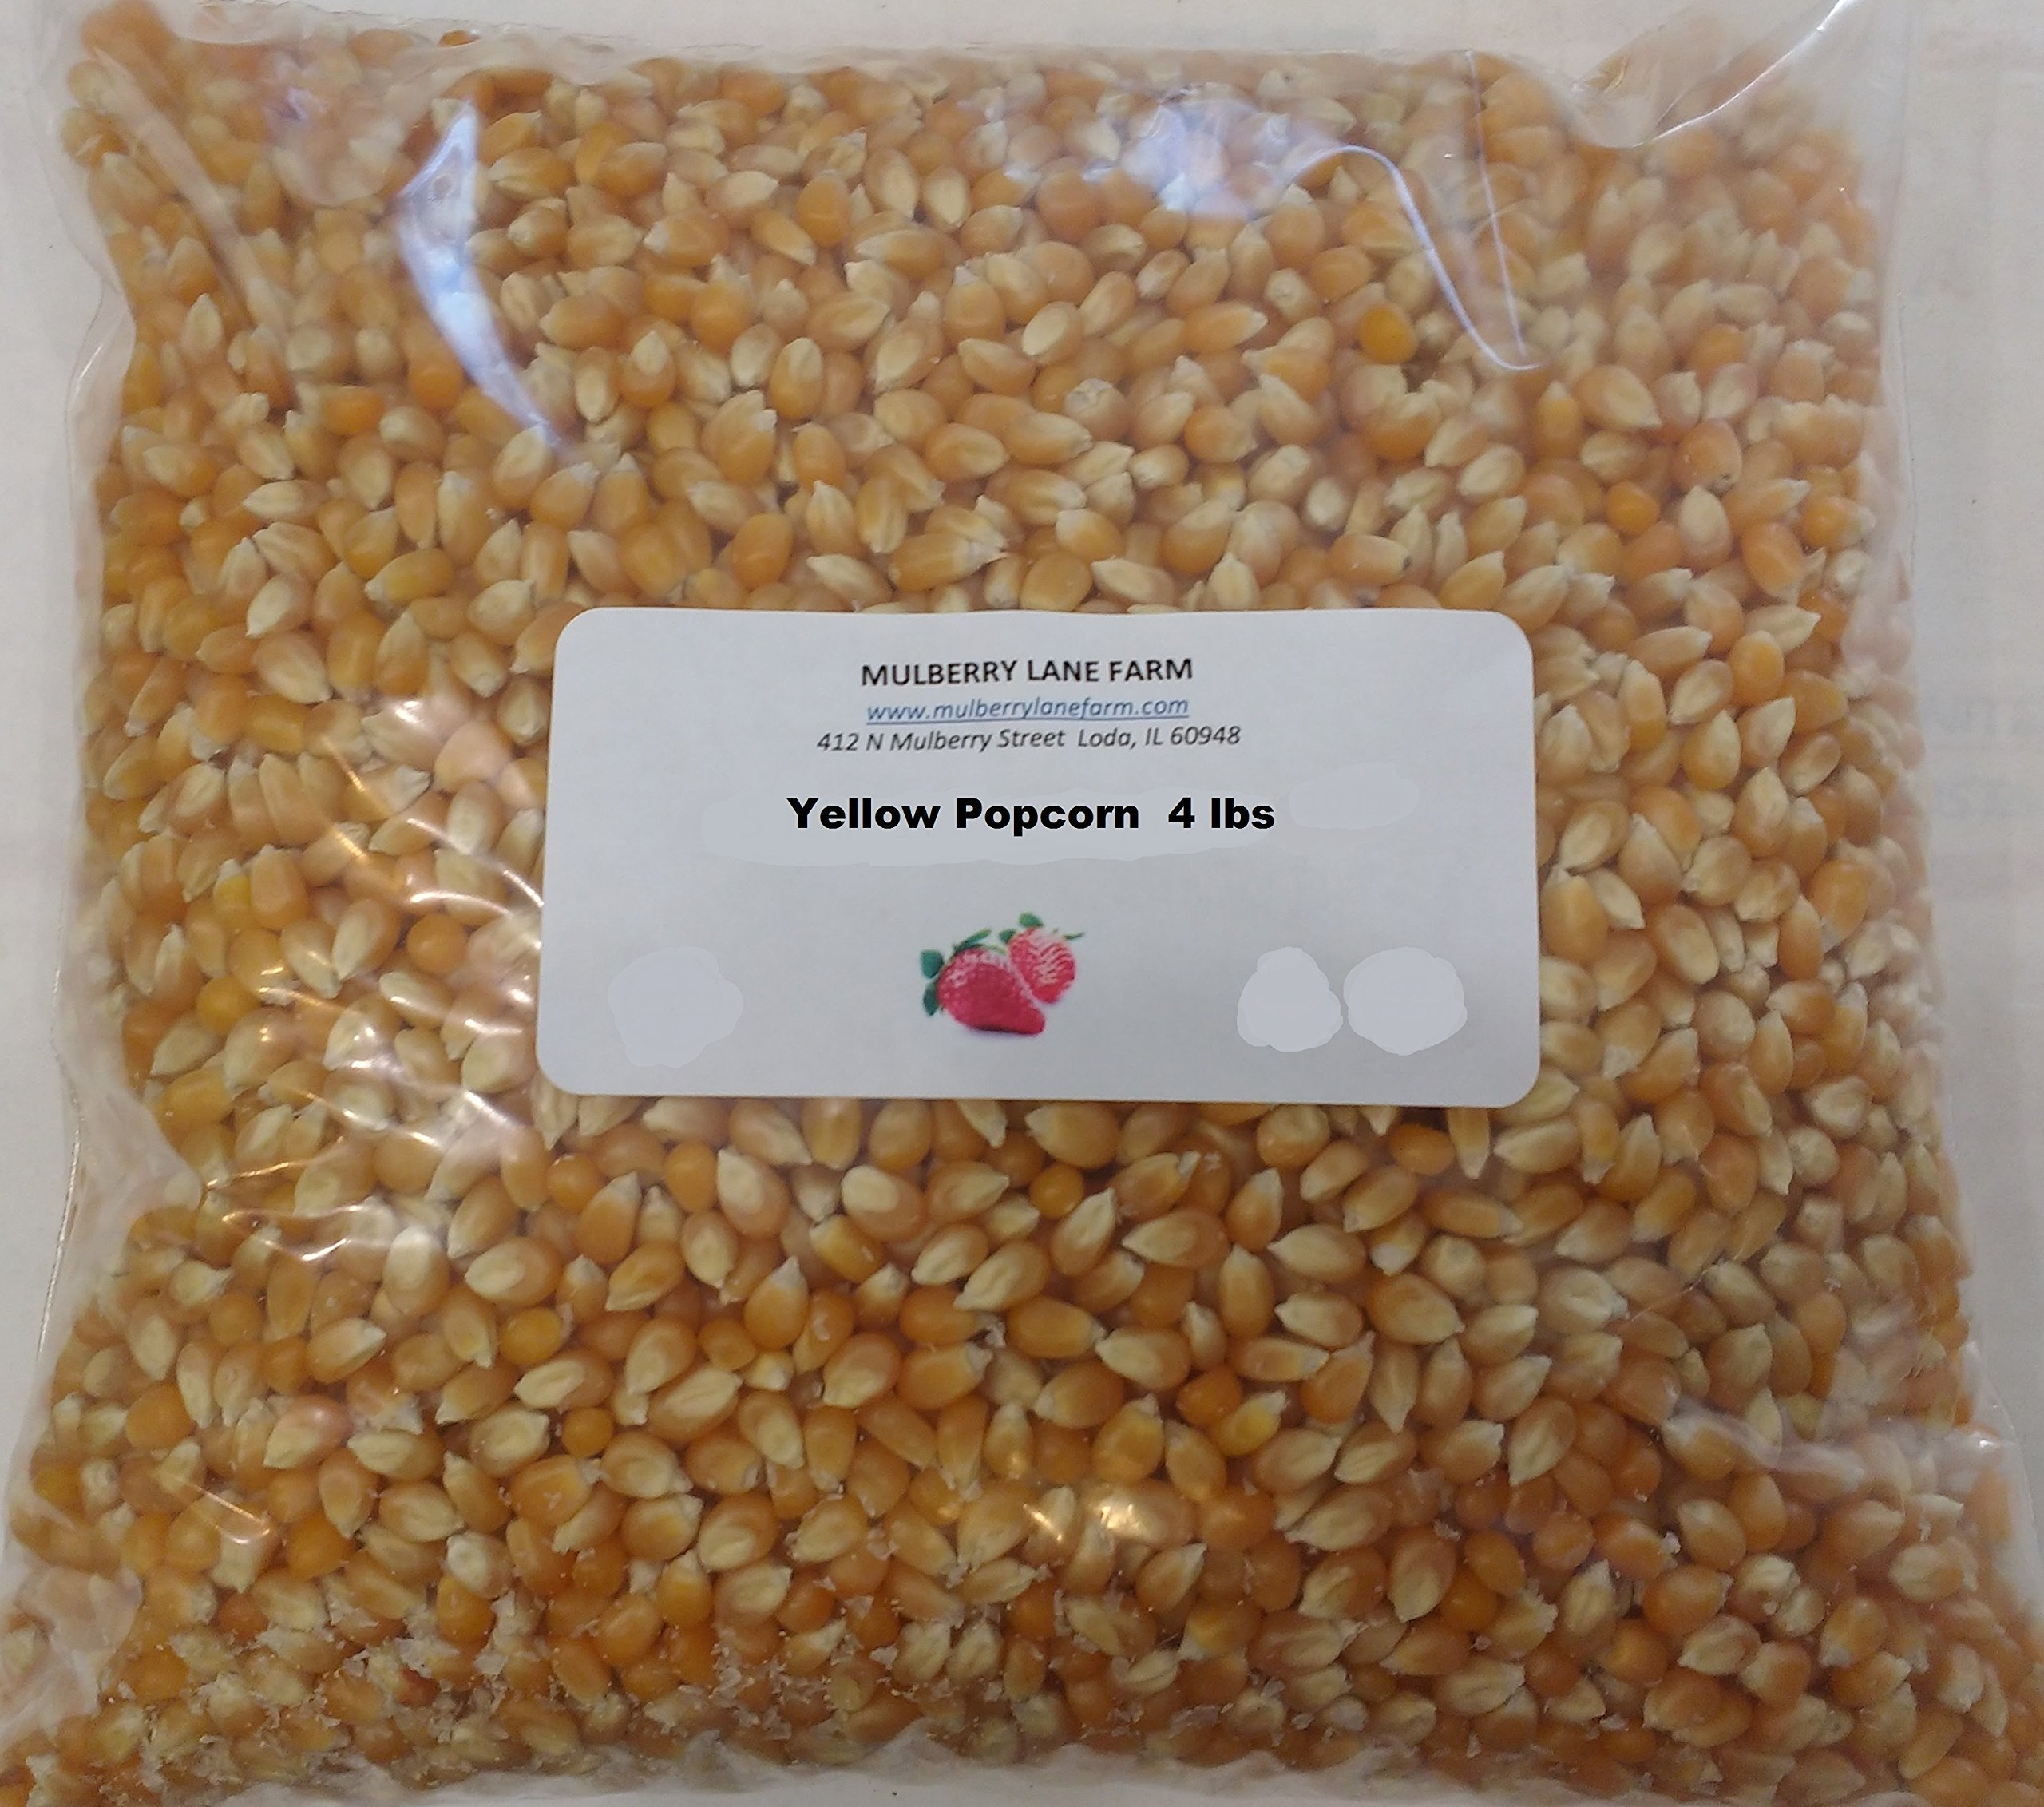 Yellow Popcorn Seeds 4 Pounds (Four lbs) Kernels Premium Gourmet, All Natural, Non-GMO, Gluten Free, GF, BULK.